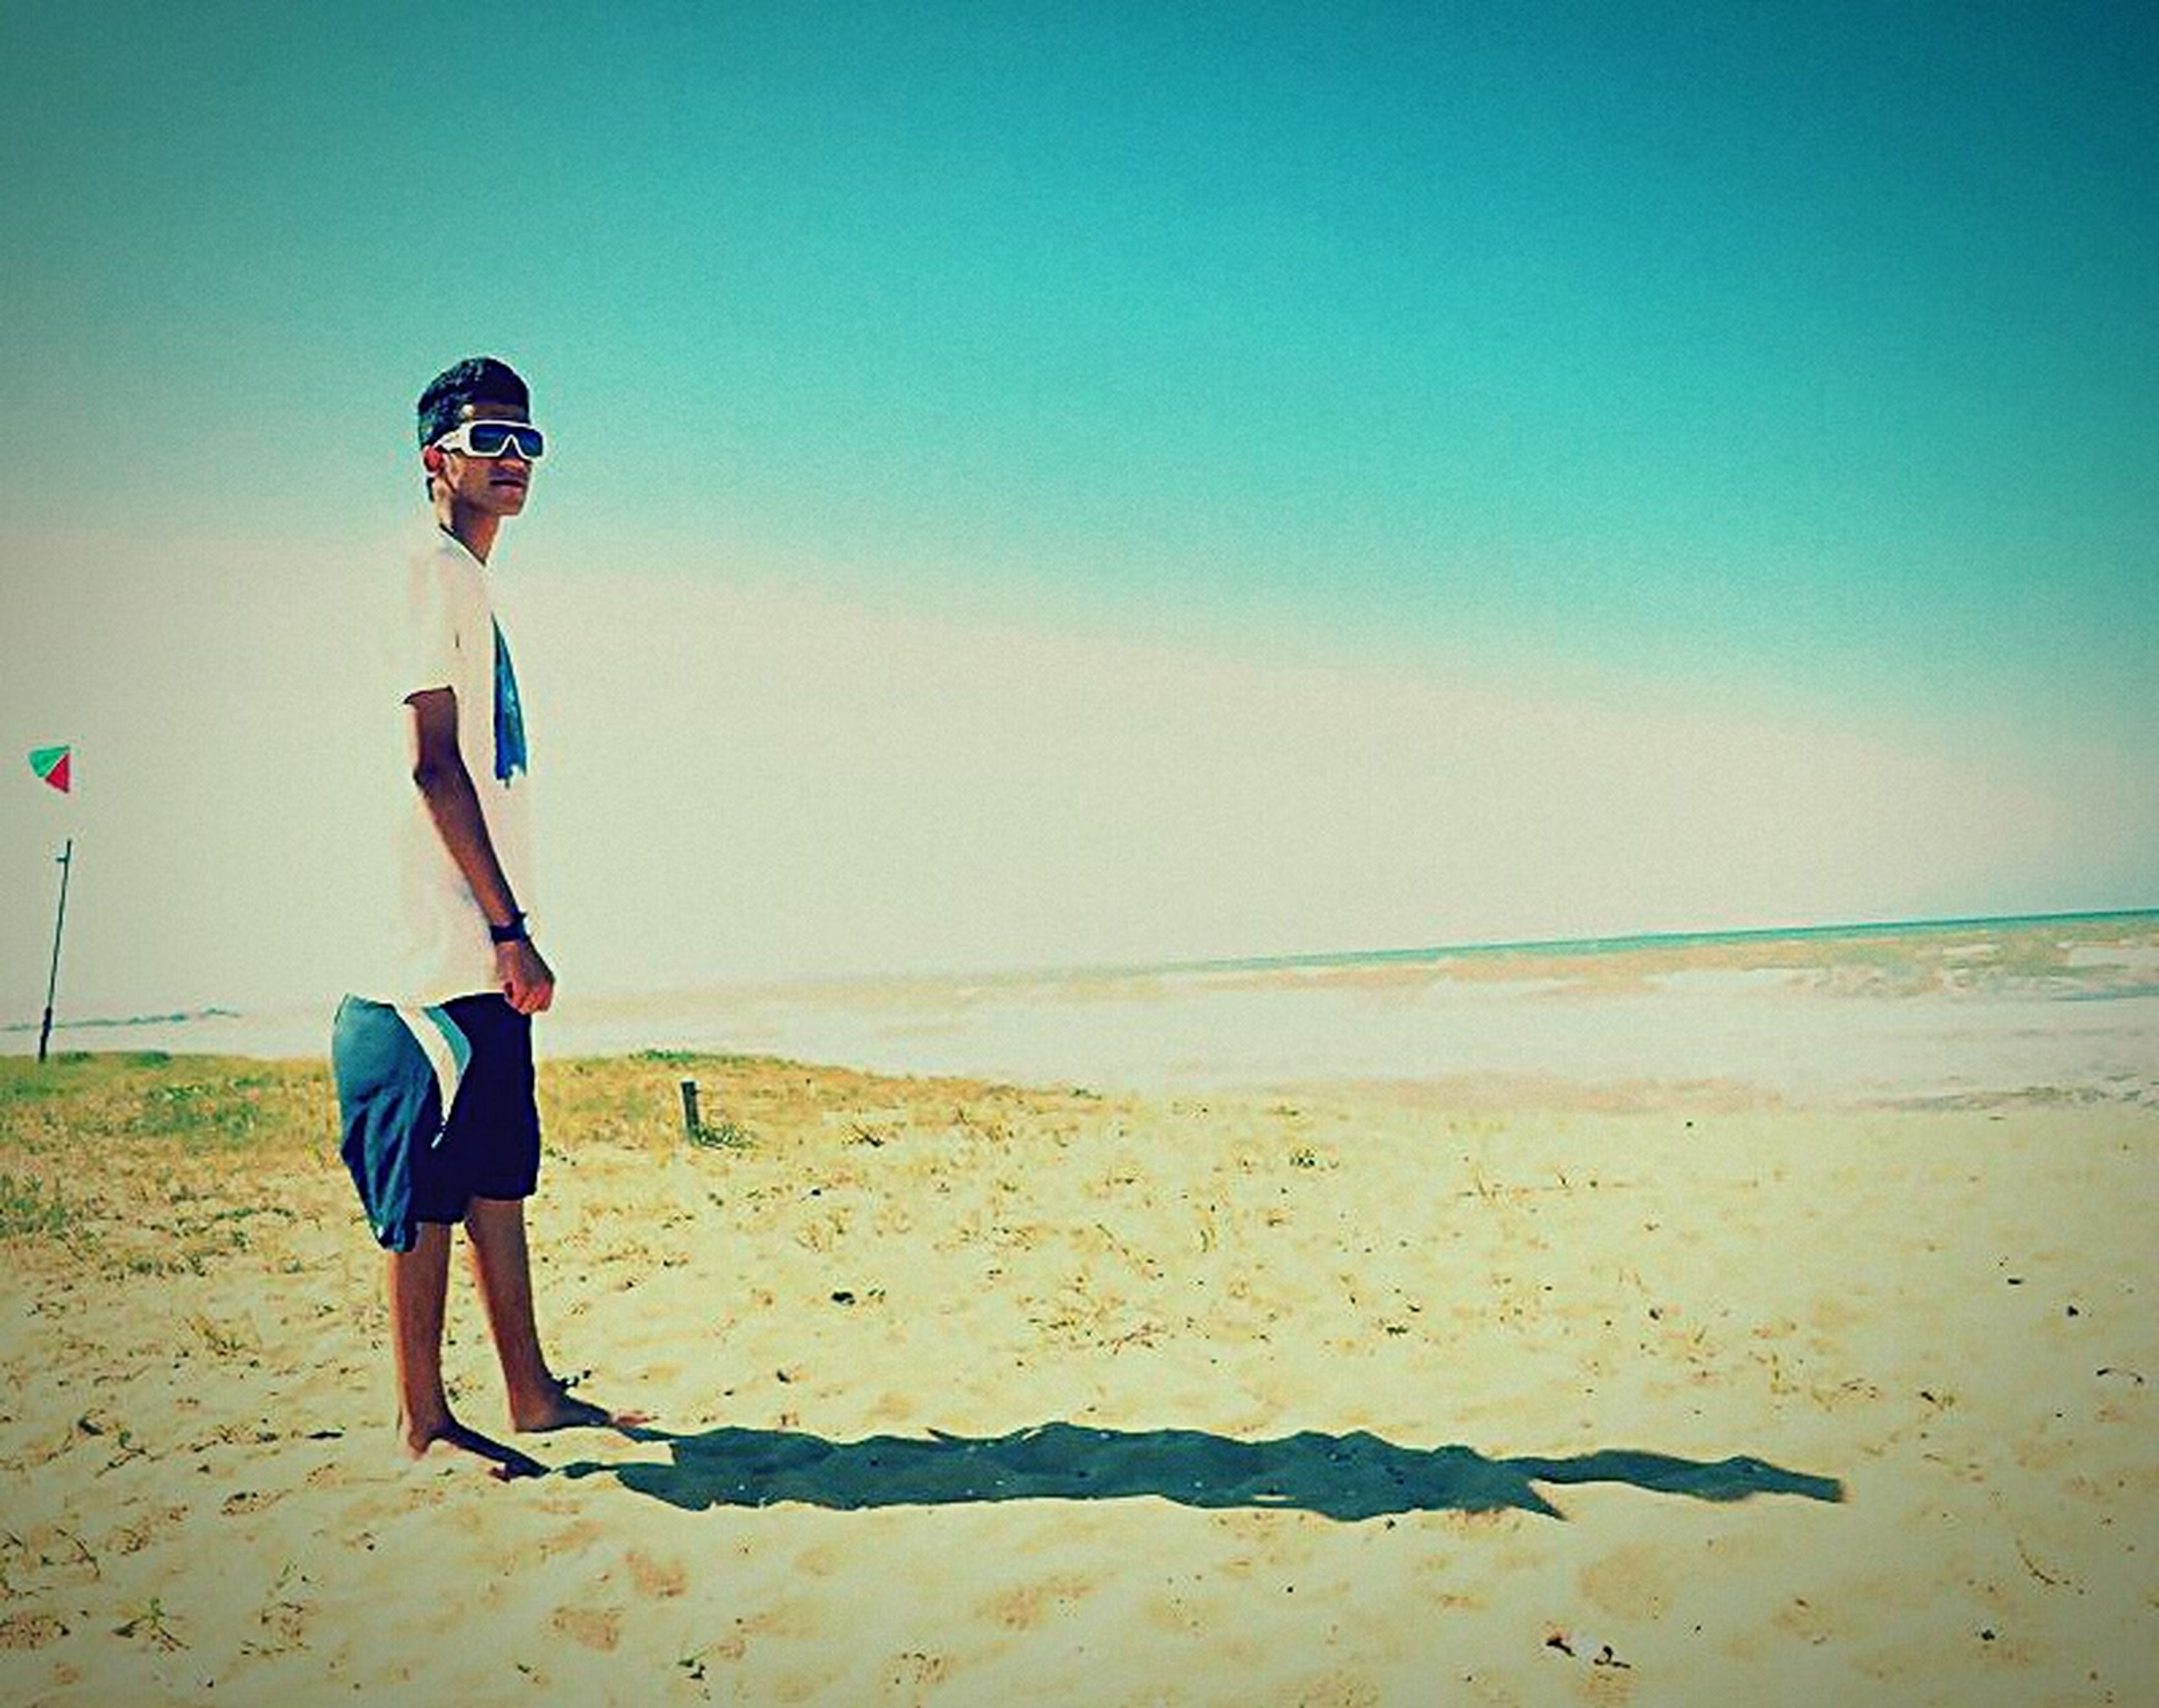 beach, sea, sand, full length, shore, horizon over water, lifestyles, leisure activity, standing, casual clothing, water, copy space, young adult, clear sky, vacations, person, beauty in nature, tranquil scene